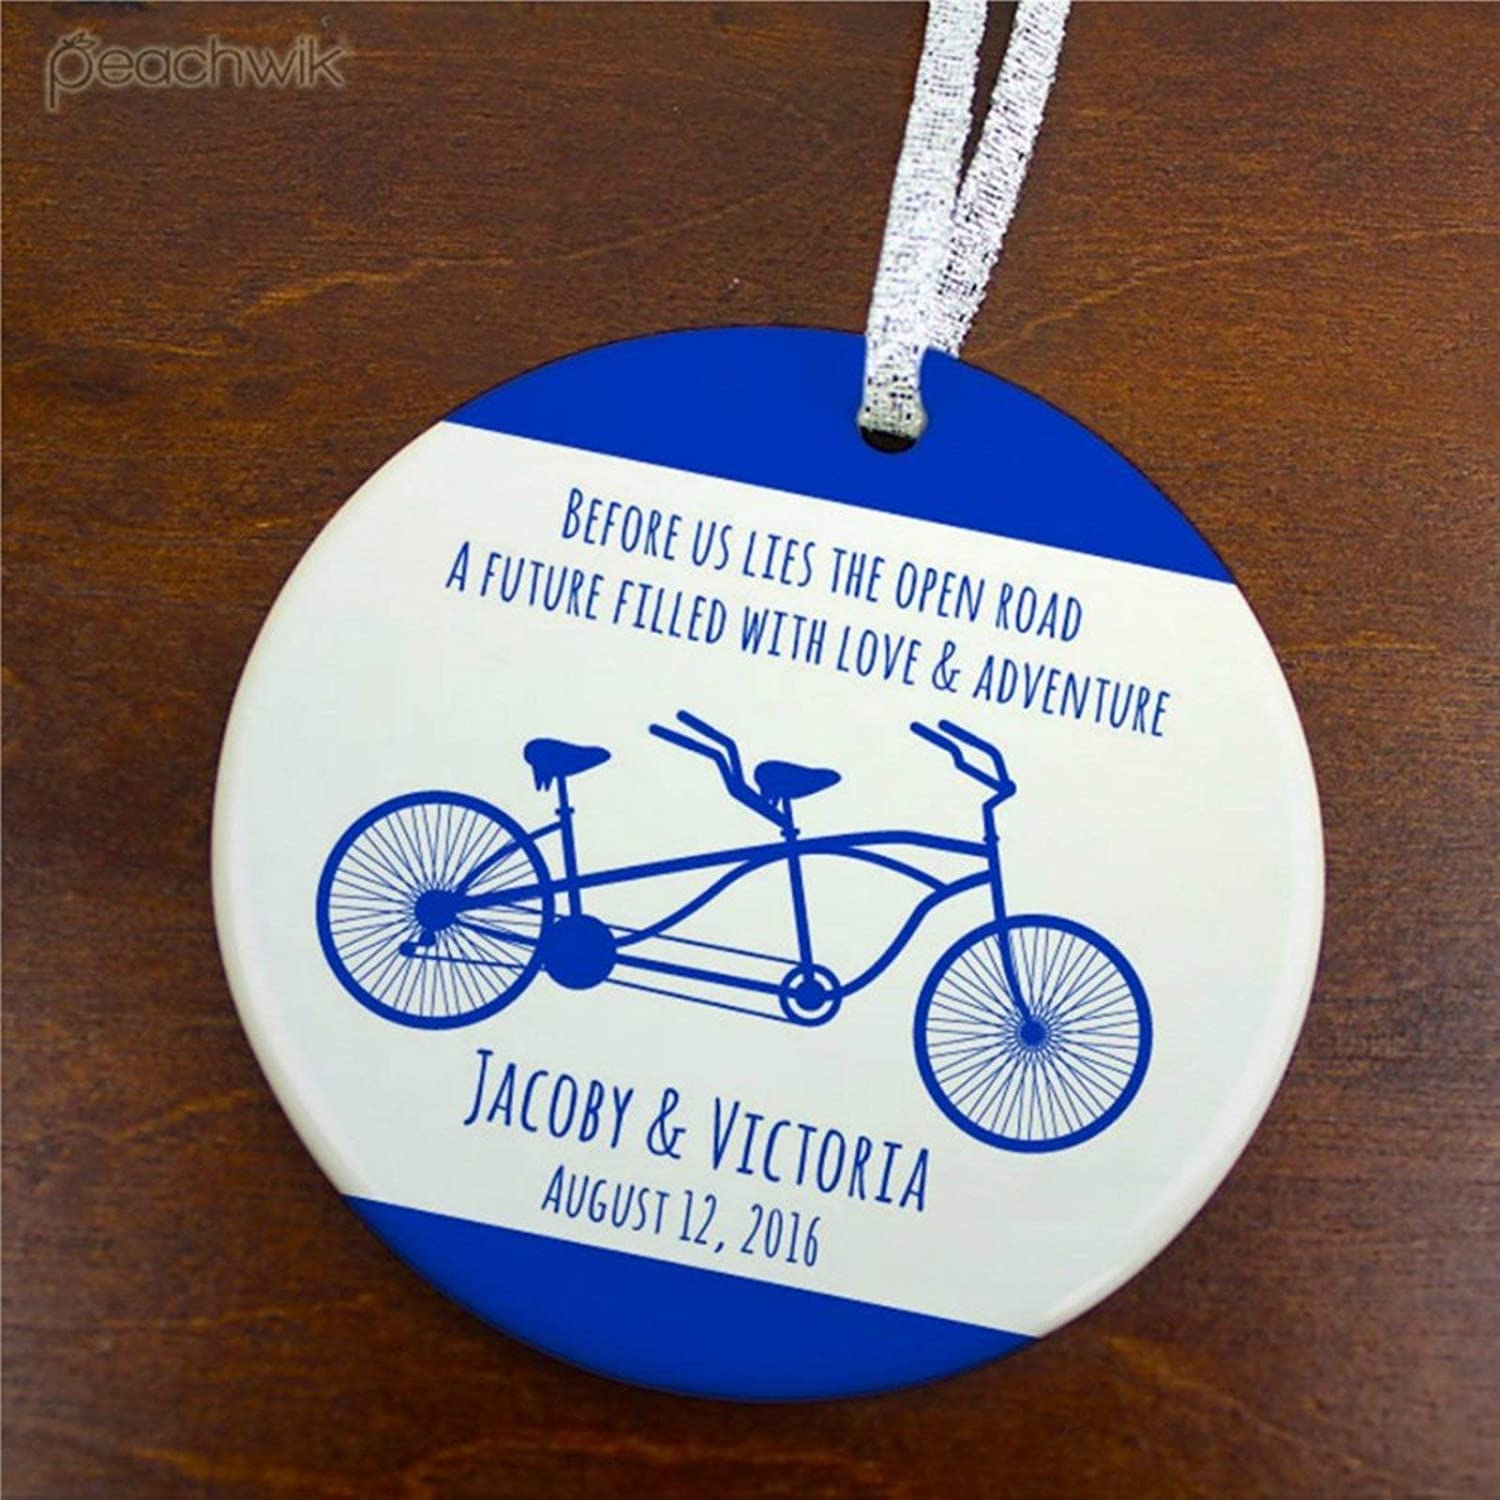 DONL9BAUER Custom Just Married Newlyweds Christmas Ornaments Tandem Bike Xmas Tree Decorations Hanging Ornament Keepsake Family Friends Present 2020 A Year to Remember